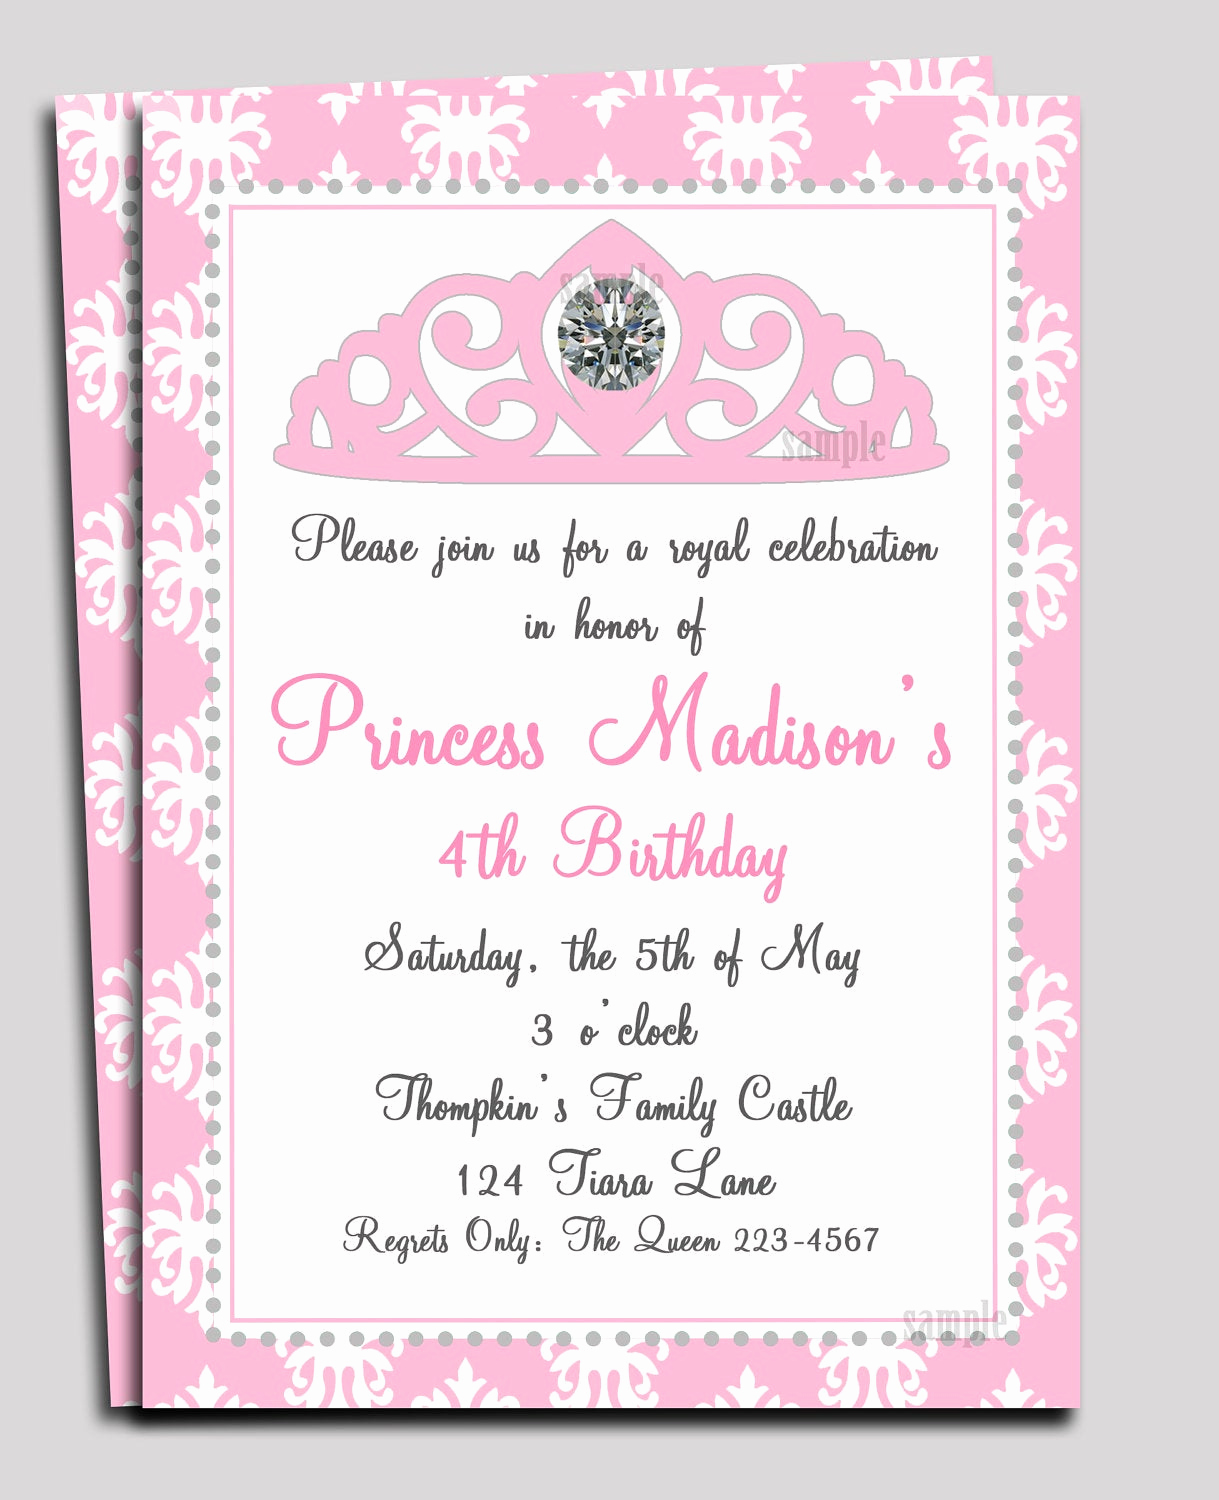 Princess Party Invitation Template Awesome Princess Invitation Printable or Printed with Free Shipping